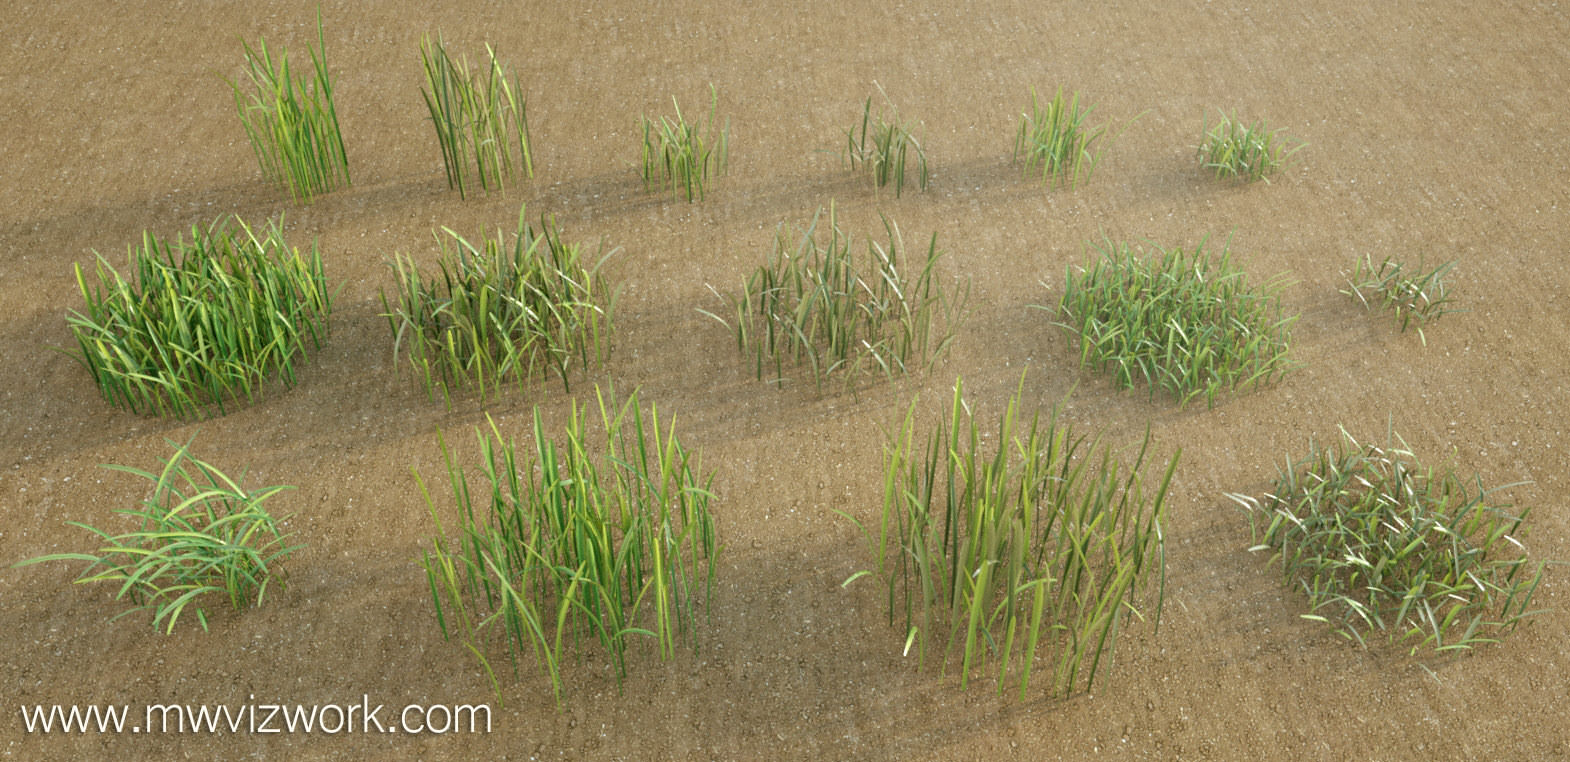 Free Grass By Mischa Winkler 3d Architectural Visualization Rendering Blog